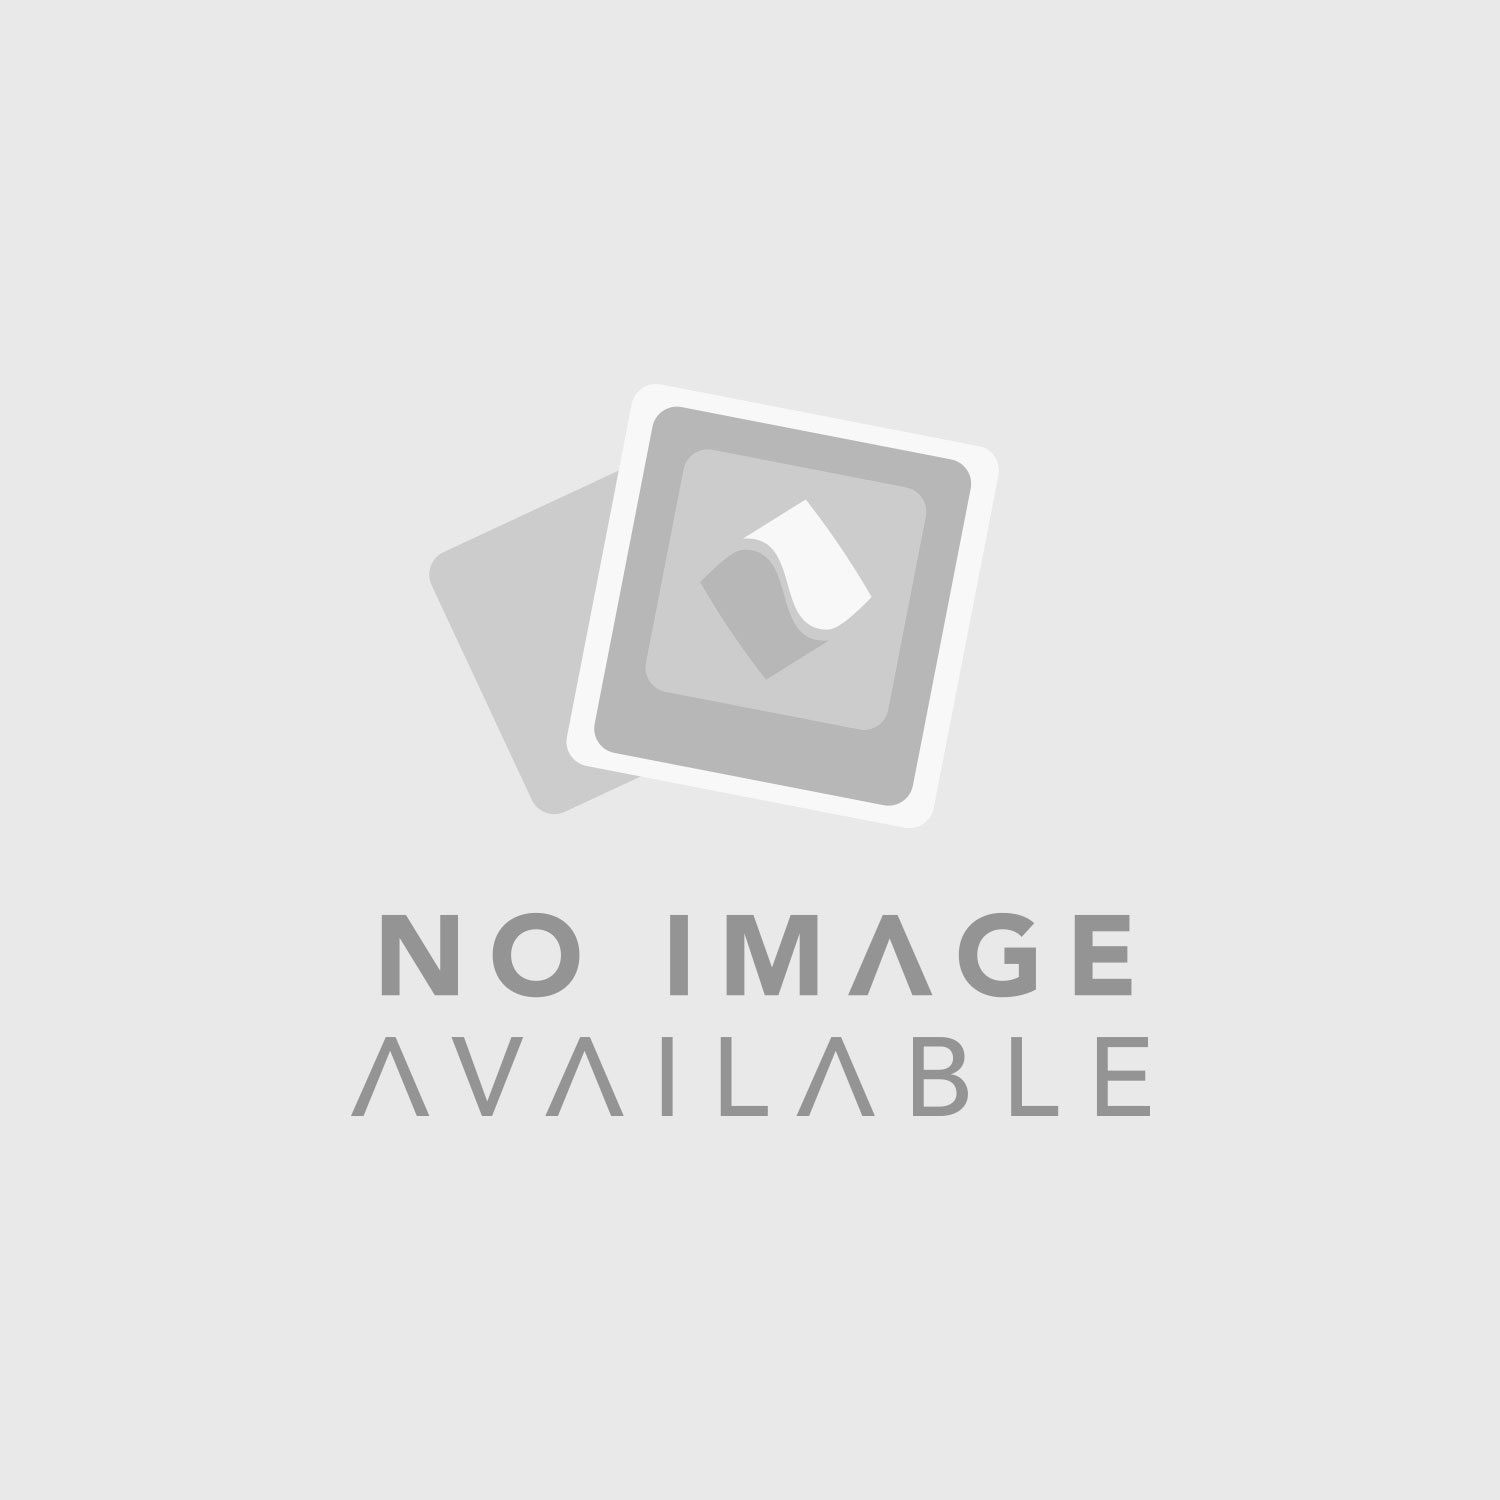 "Electro-Voice EVF-1122S 12"" 2-Way Full-Range Outdoor Speaker (Fiberglass-Finish, Black, 60 x 60°)"